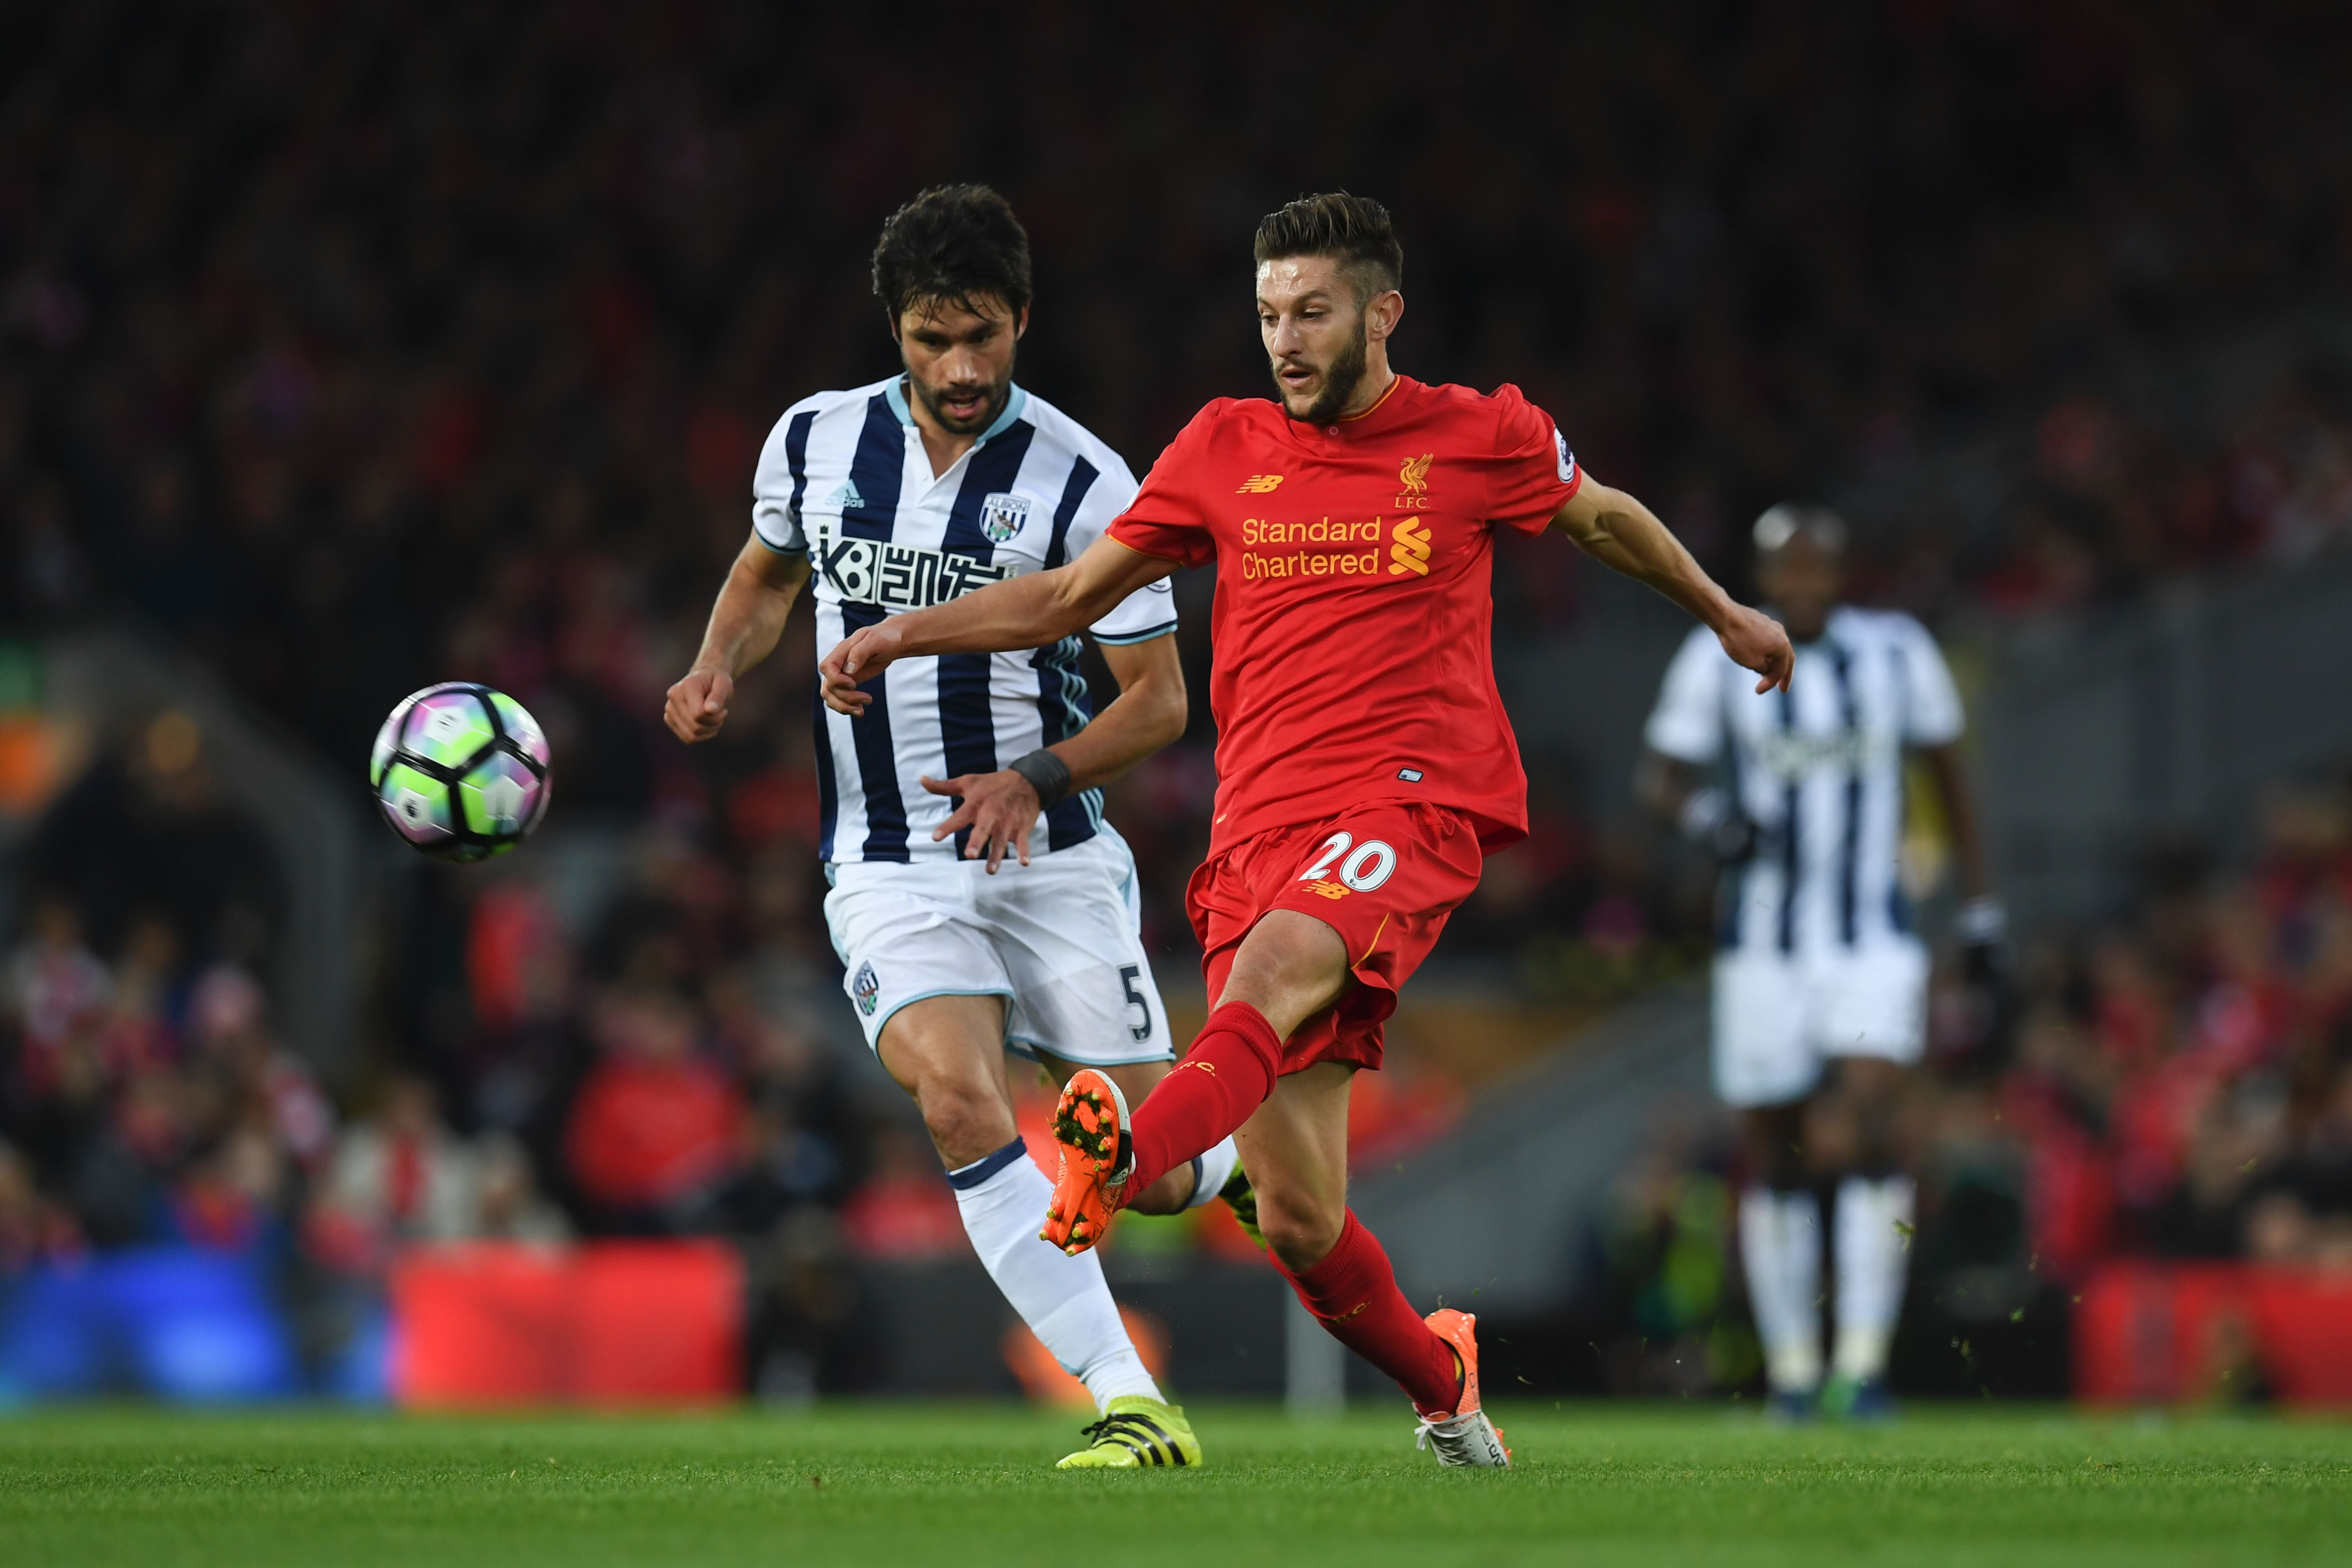 Liverpool's English midfielder Adam Lallana (R) plays the ball ahead of West Bromwich Albion's Argentinian midfielder Claudio Yacob (L) during the English Premier League football match between Liverpool and West Bromwich Albion at Anfield in Liverpool, north west England on October 22, 2016. / AFP / PAUL ELLIS / RESTRICTED TO EDITORIAL USE. No use with unauthorized audio, video, data, fixture lists, club/league logos or 'live' services. Online in-match use limited to 75 images, no video emulation. No use in betting, games or single club/league/player publications. / (Photo credit should read PAUL ELLIS/AFP/Getty Images)